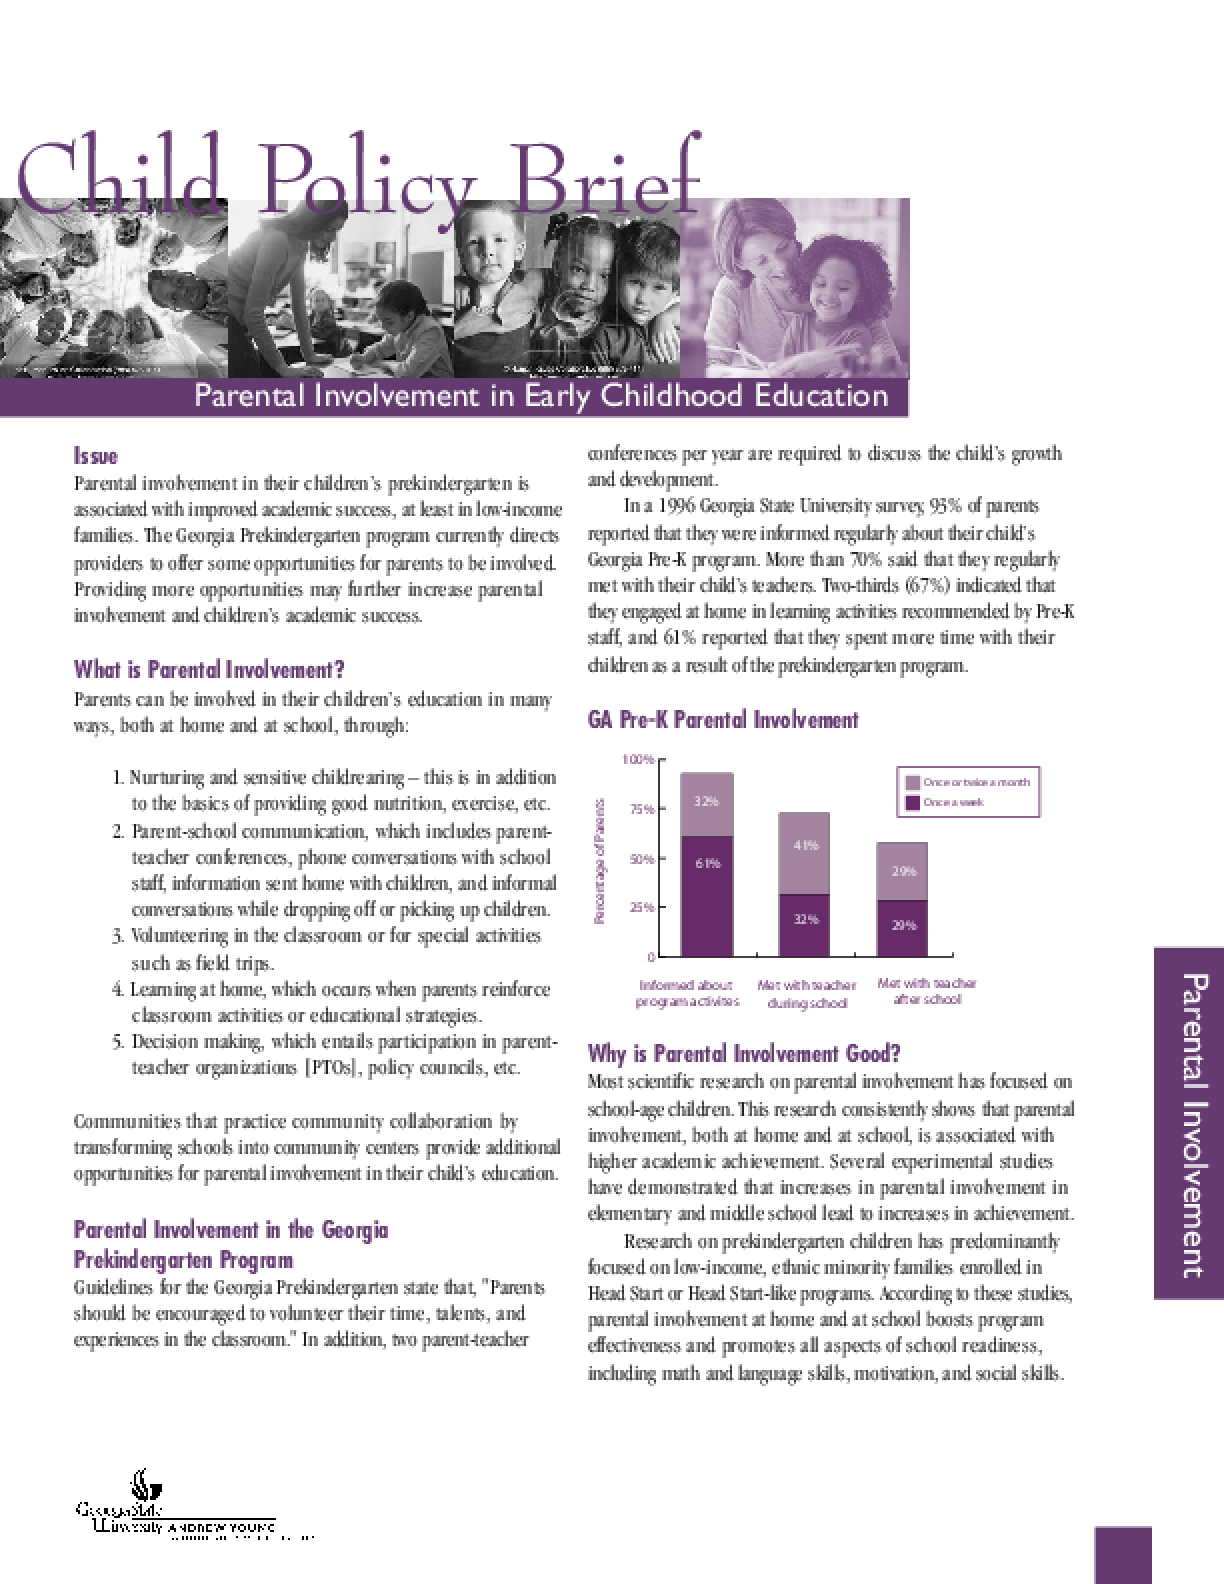 Parental Involvement in Early Childhood Education